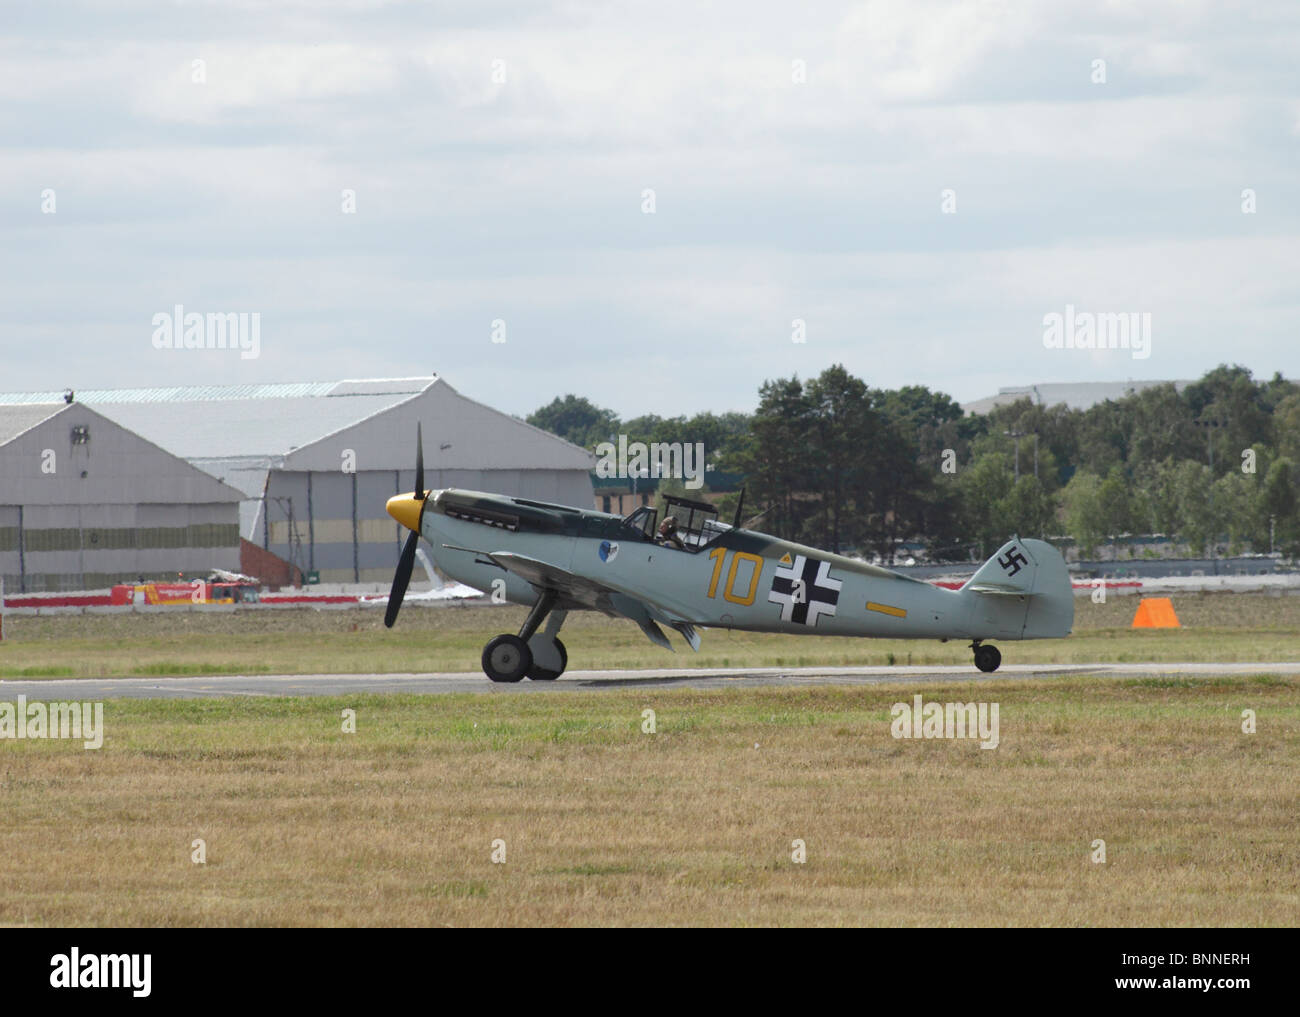 Messerschmitt BF 109 about to take off at Farnborough Airshow 2010 - Stock Image